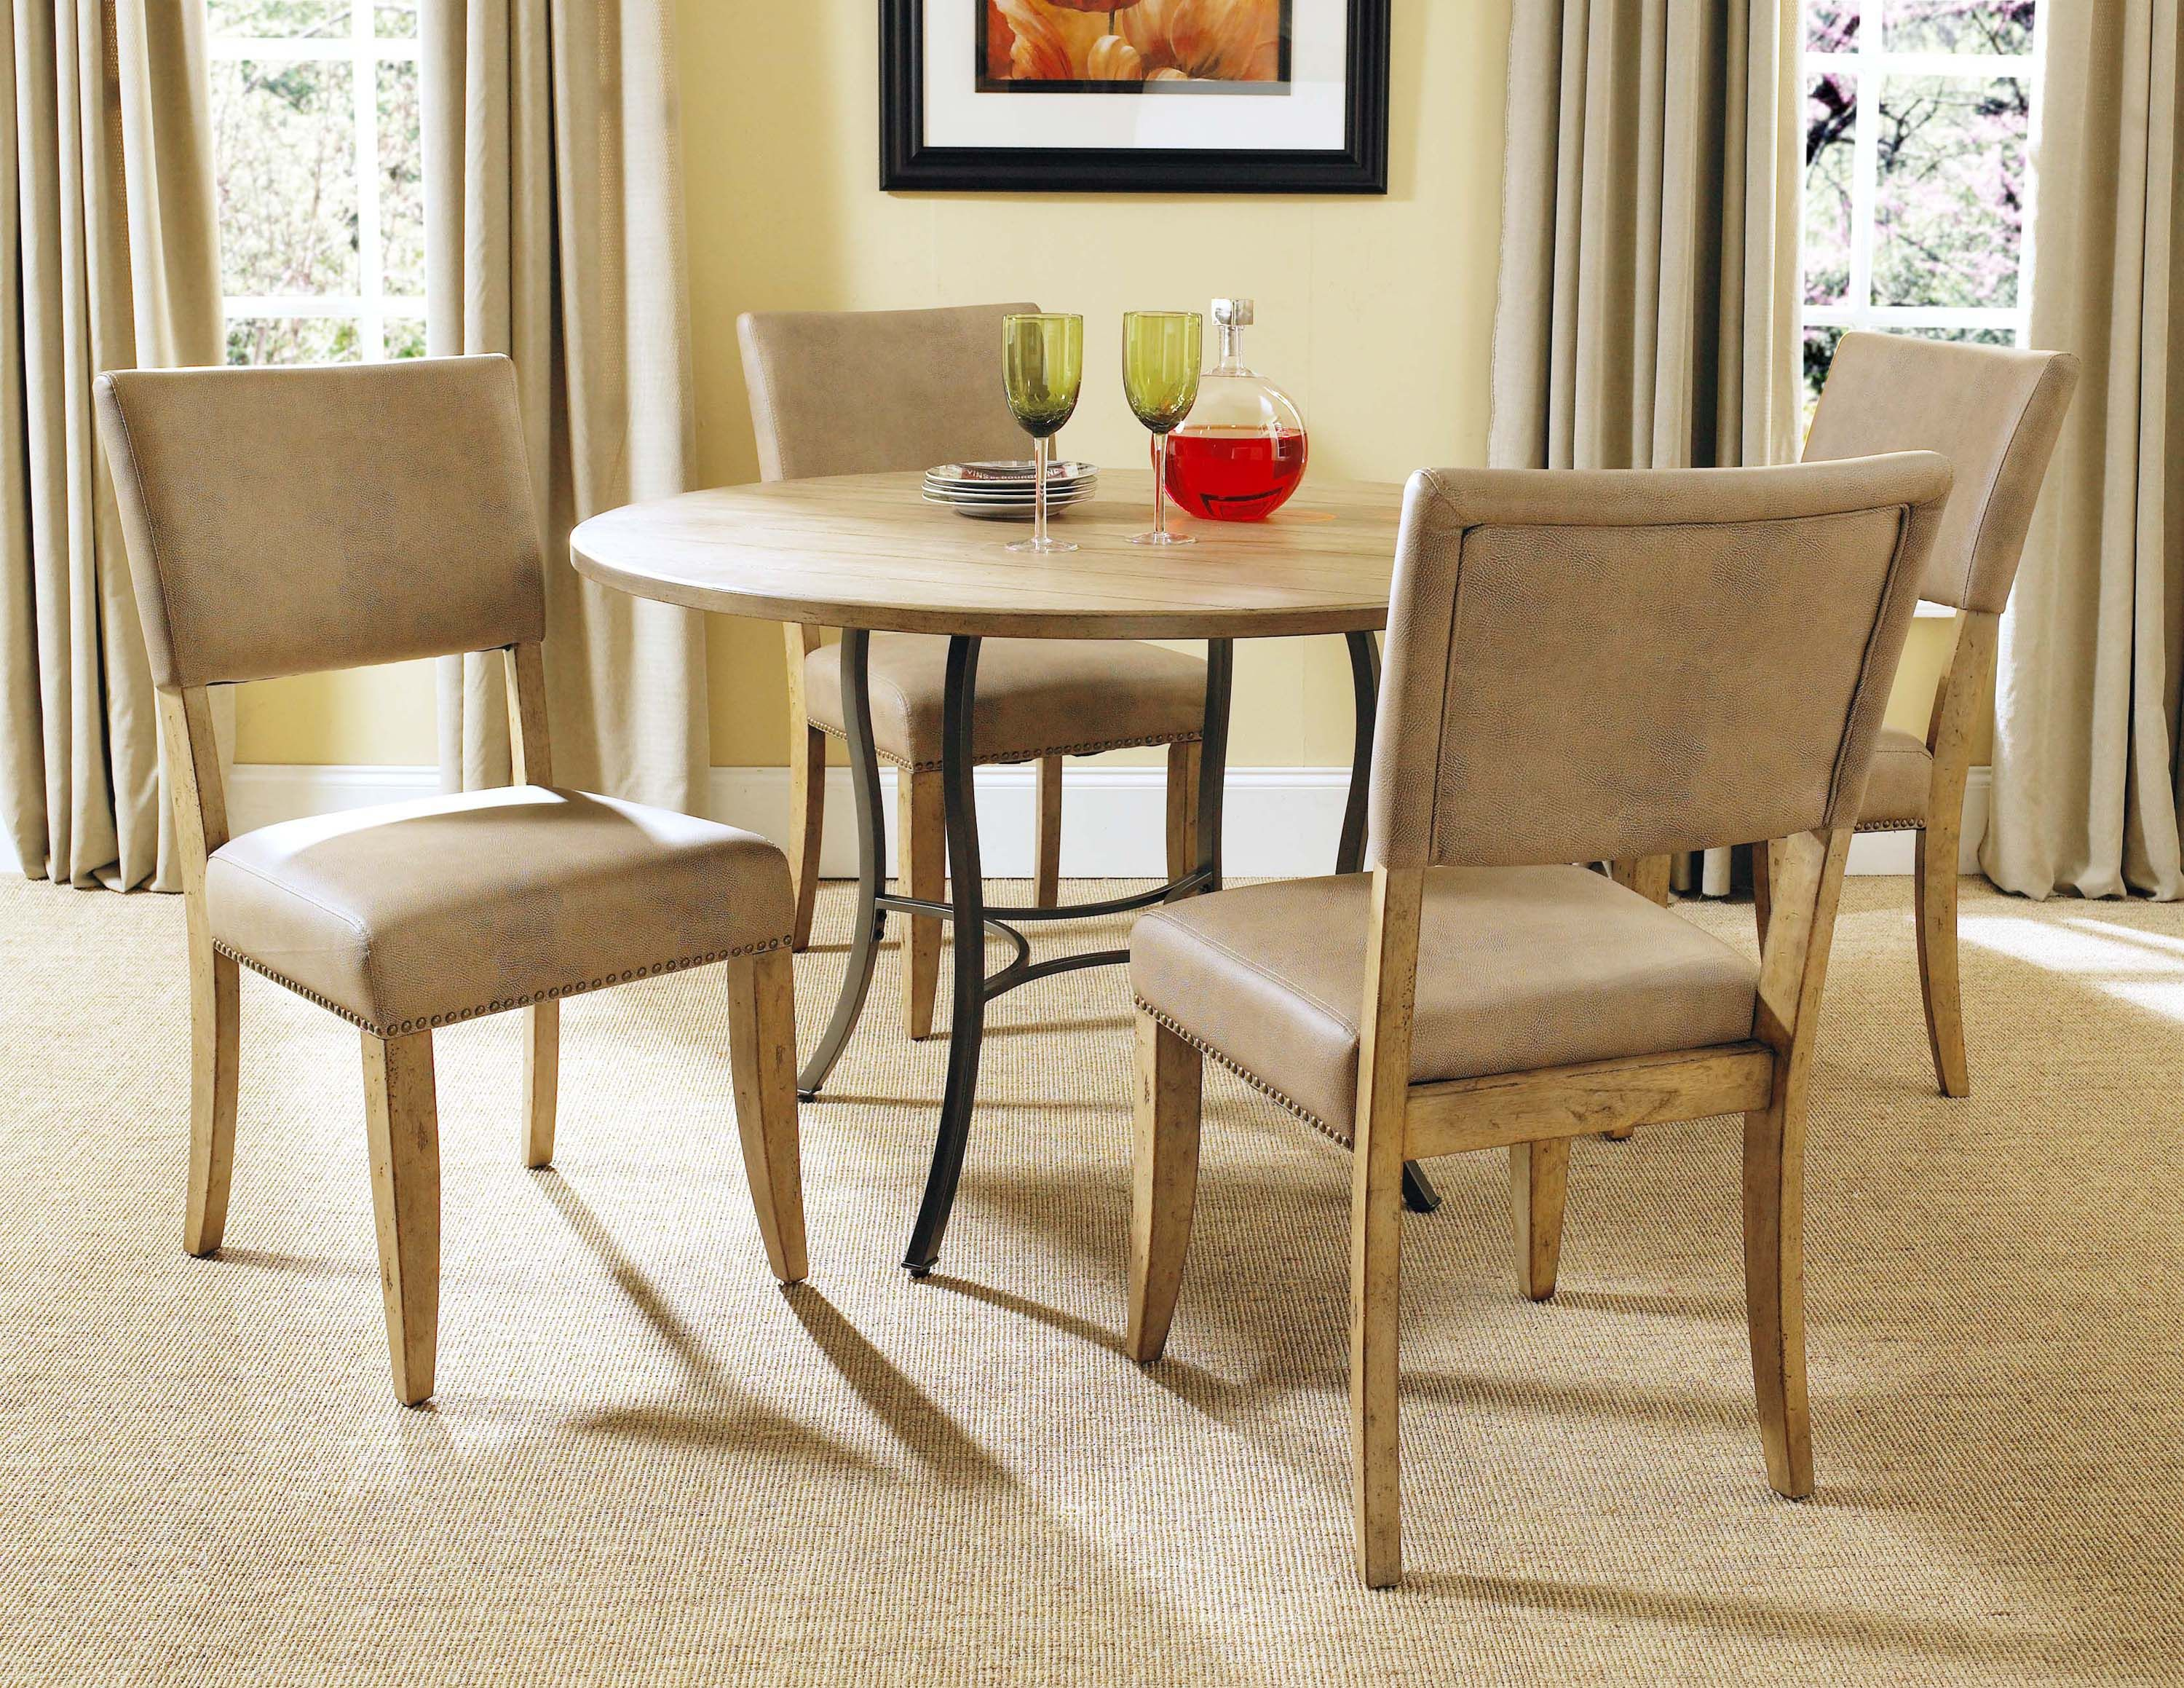 Parson Dining Room Chairs Highlight Your Dining Look Exceptionally Extraordinary Cheap Dining Room Sets Under 100 Inspiration Design